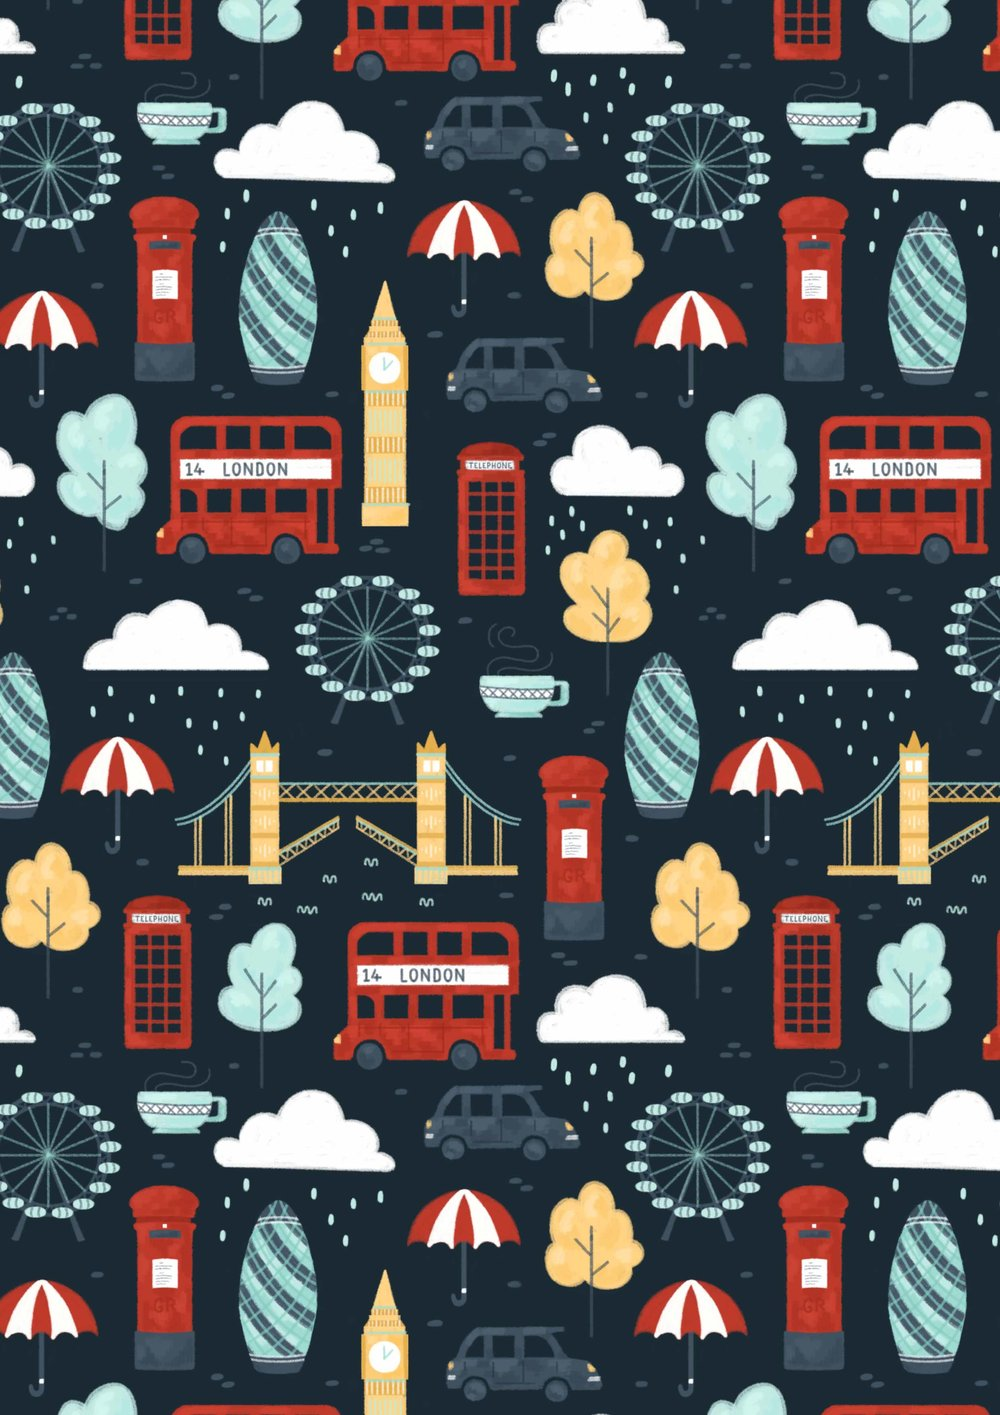 Illustrated London pattern, with London Bridge, Big Ben, taxis, buses and mail box.